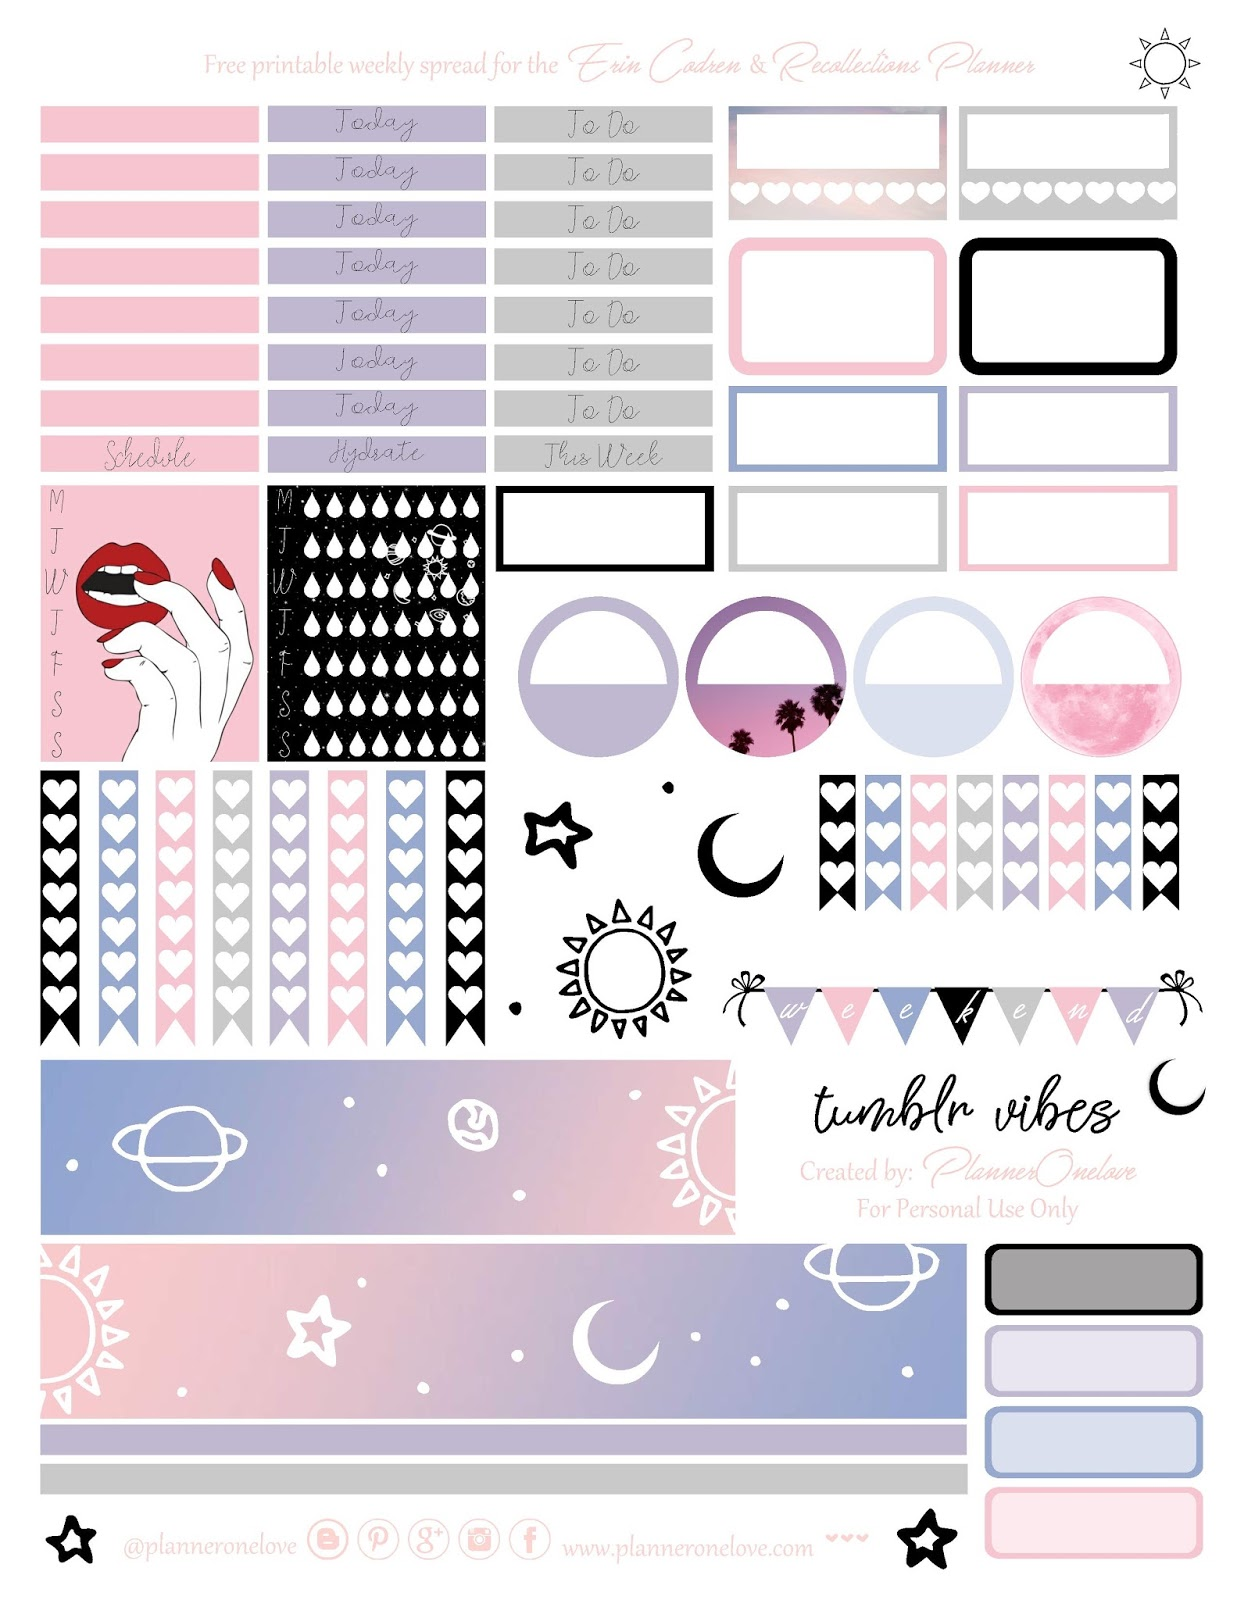 photograph relating to Tumblr Stickers Printable referred to as free of charge tumblr vibes printable planner stickers for the Erin